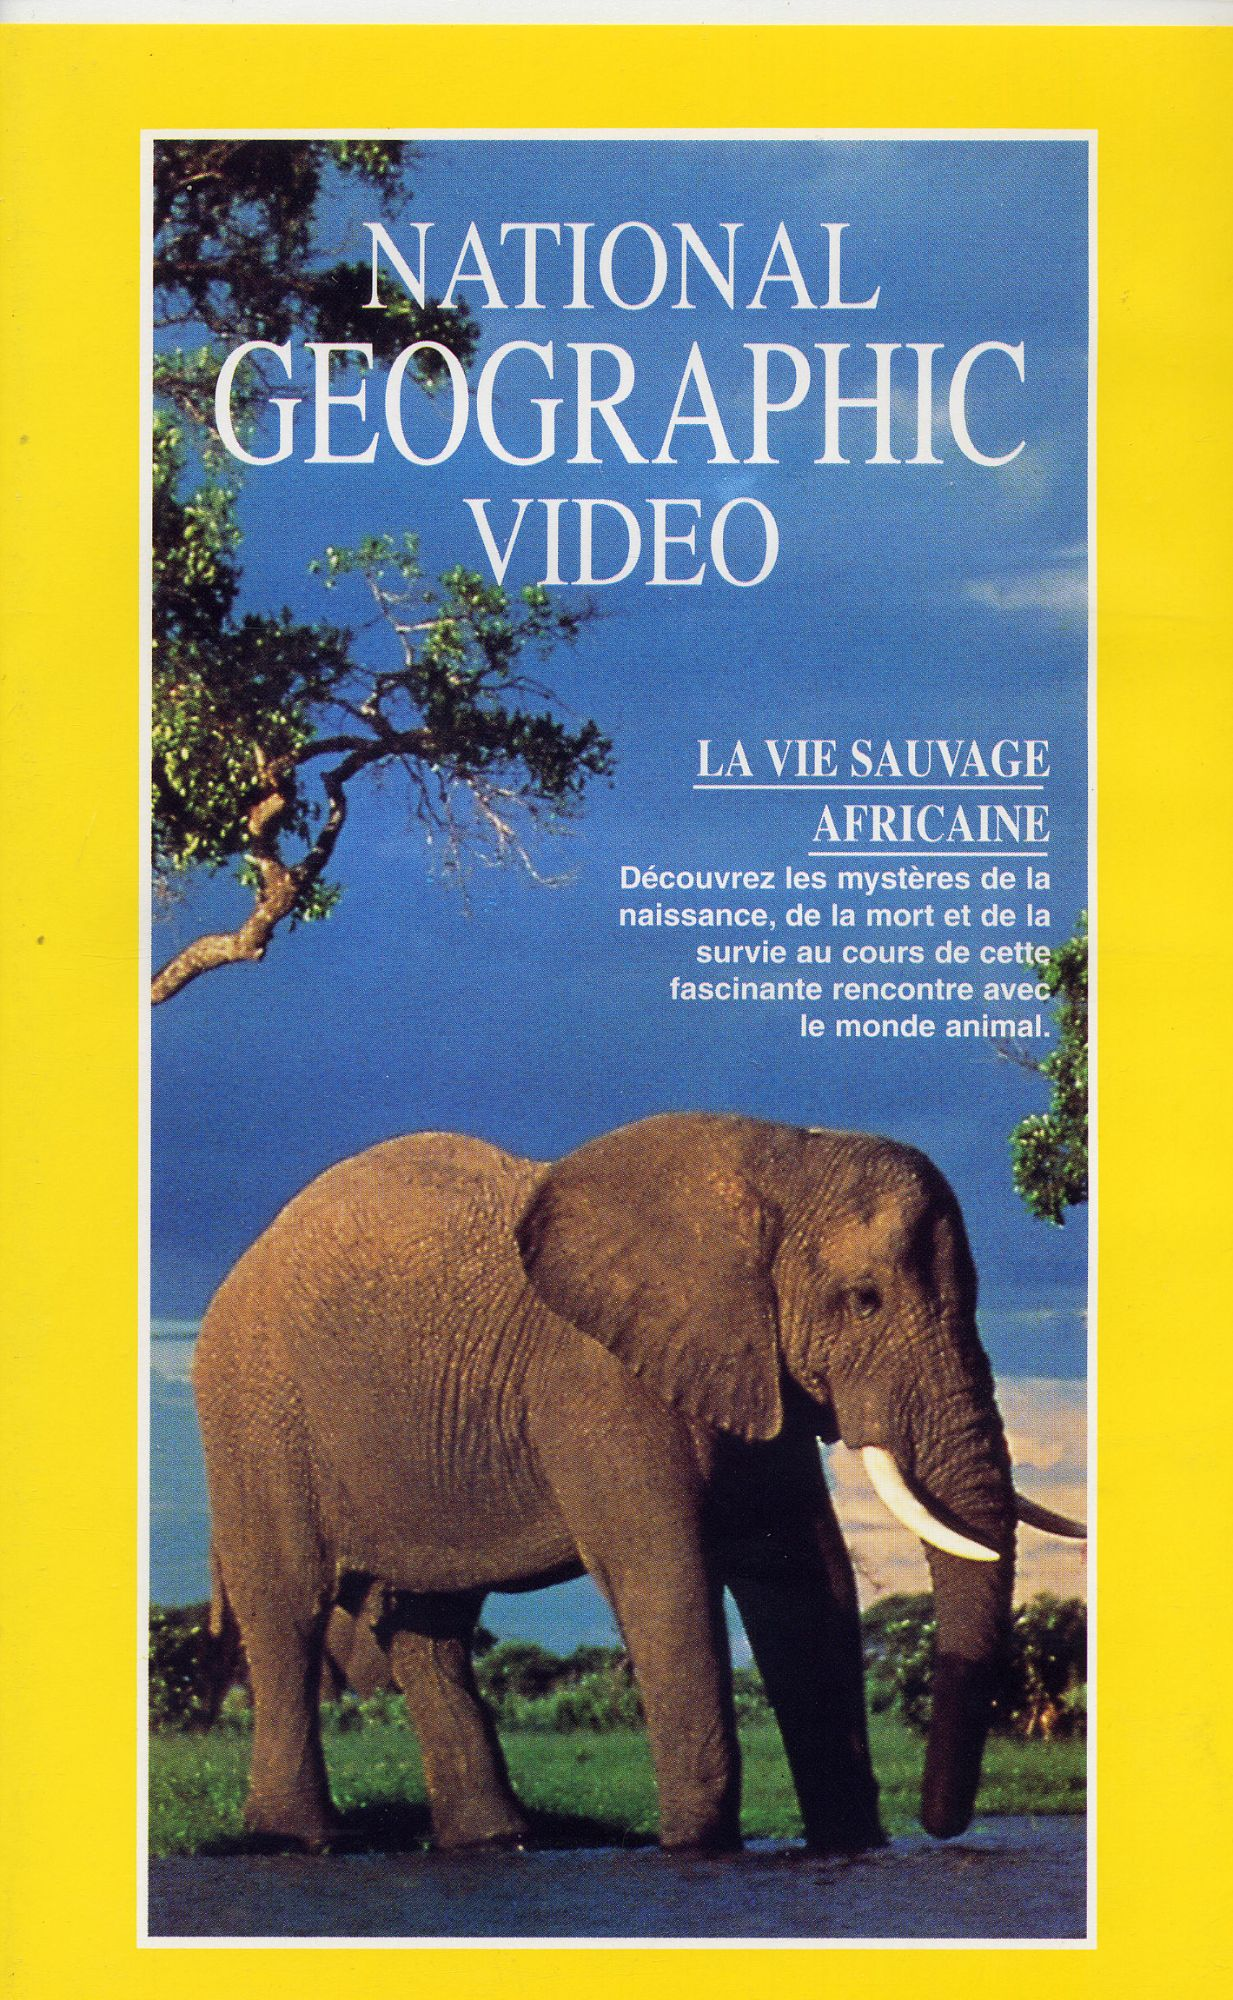 National Geographic Video - La Vie Sauvage Africaine 0999